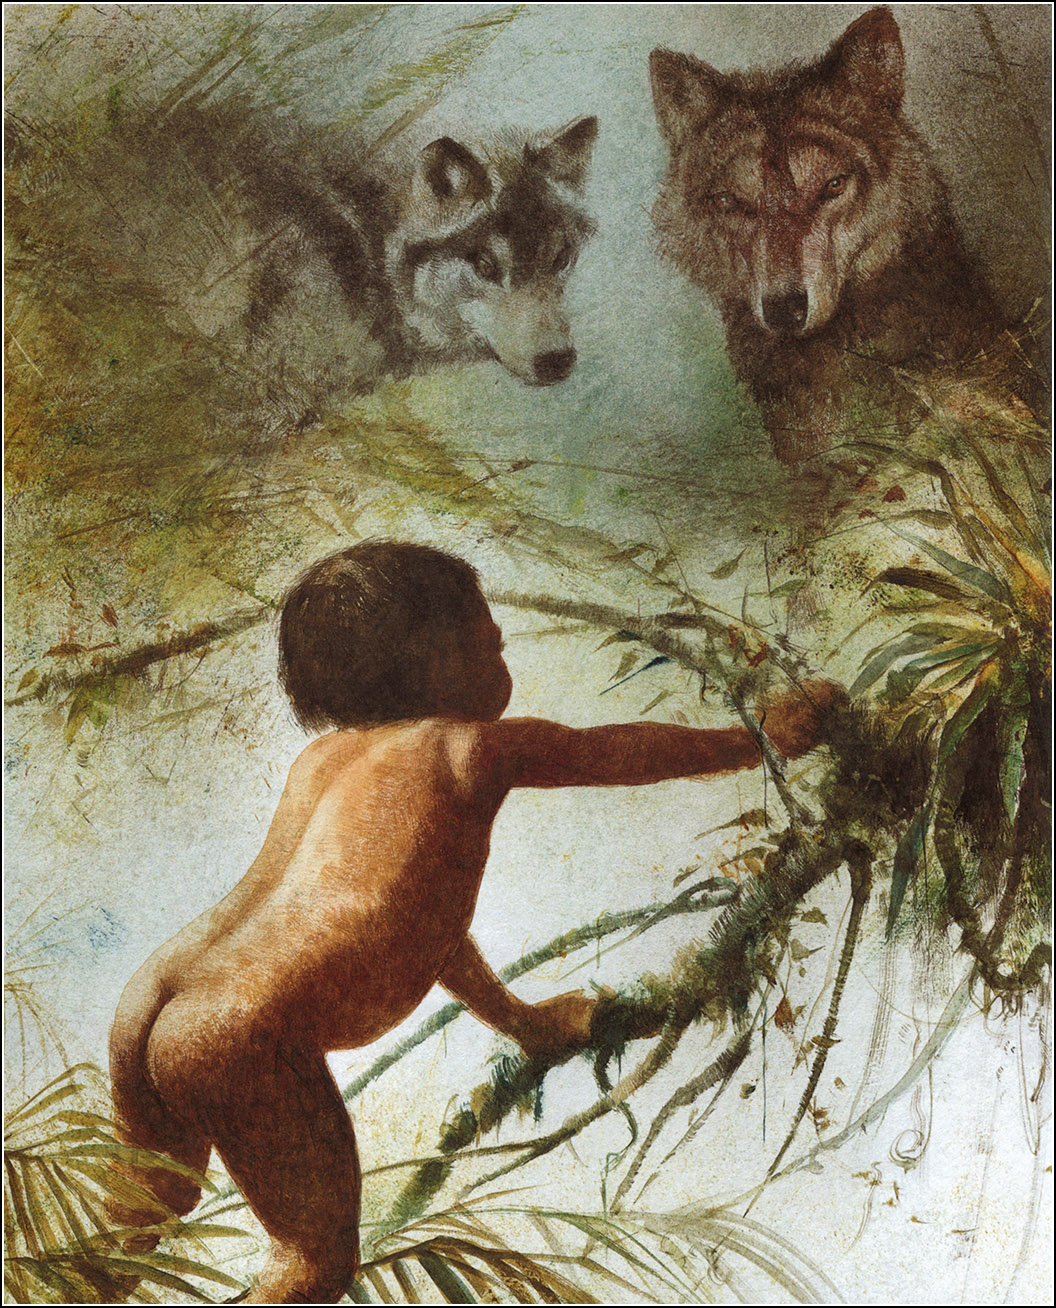 TThe Jungle Book.  Robert Ingpen